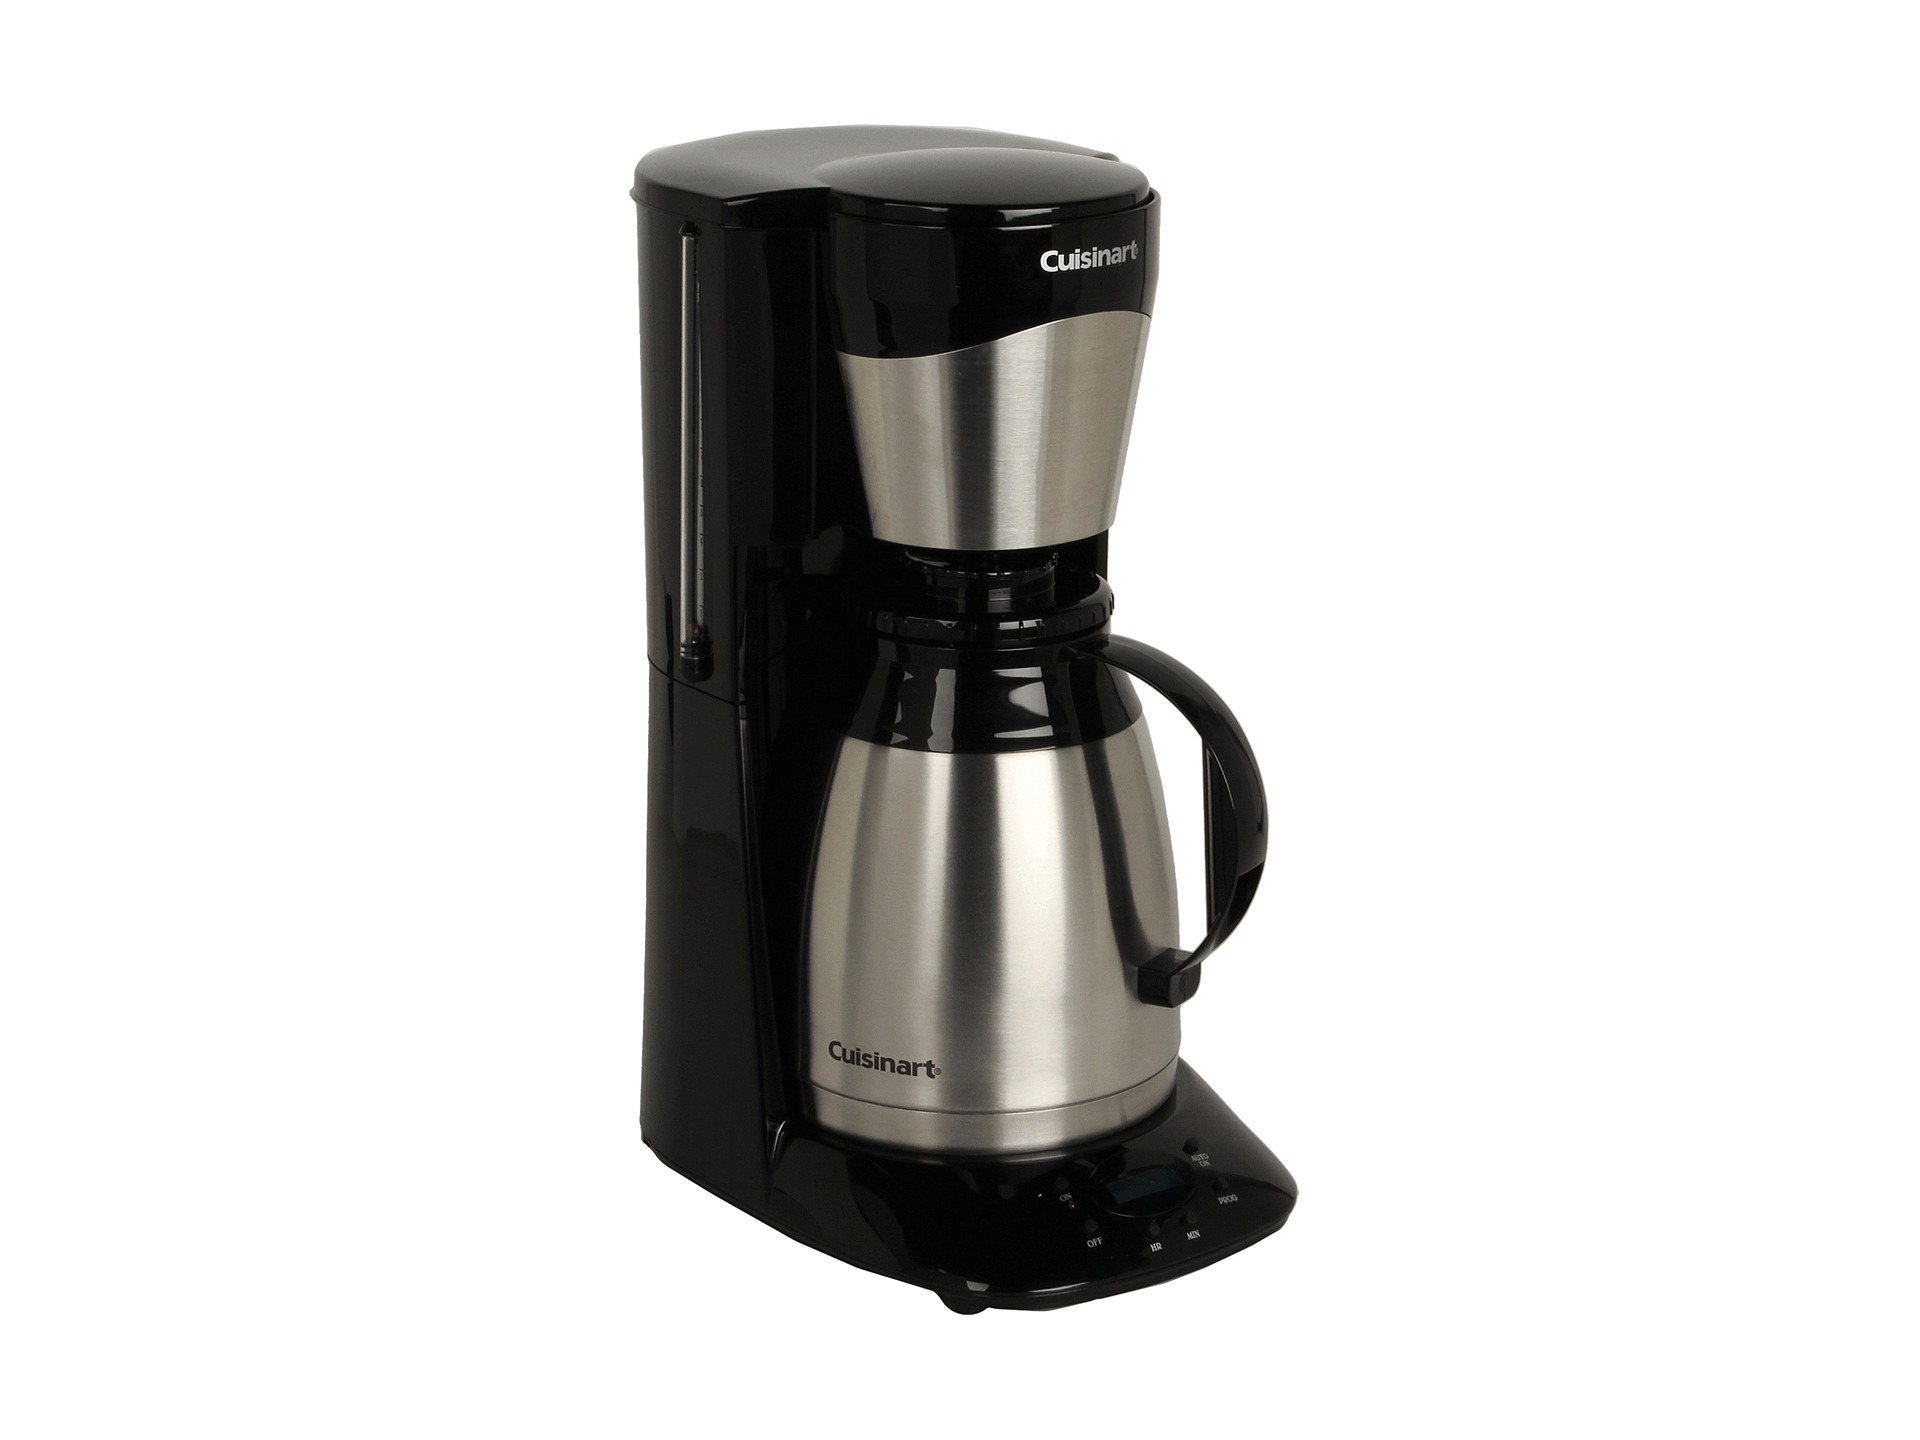 Thermal Coffee Maker Best Reviews : Cuisinart Dtc 975bkn 12 Cup Thermal Coffee Maker Shipped Free at Zappos